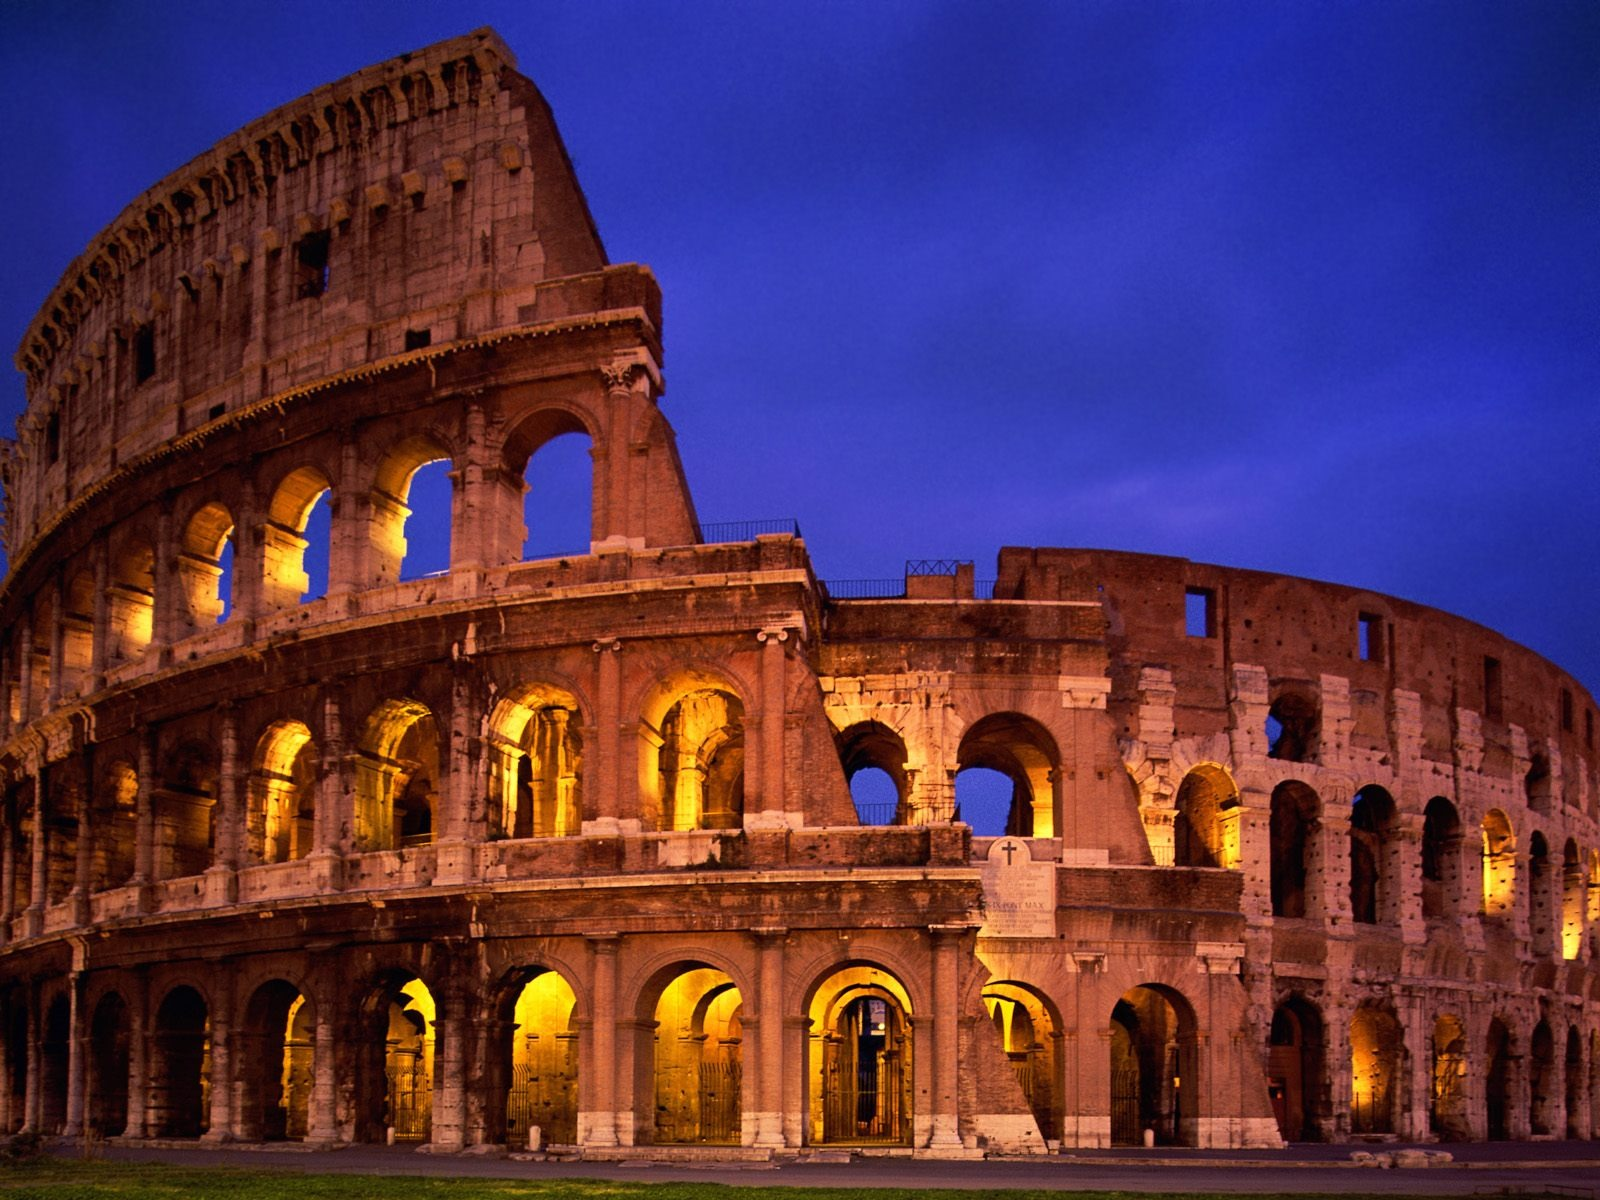 The Colosseum: Emblem of Rome